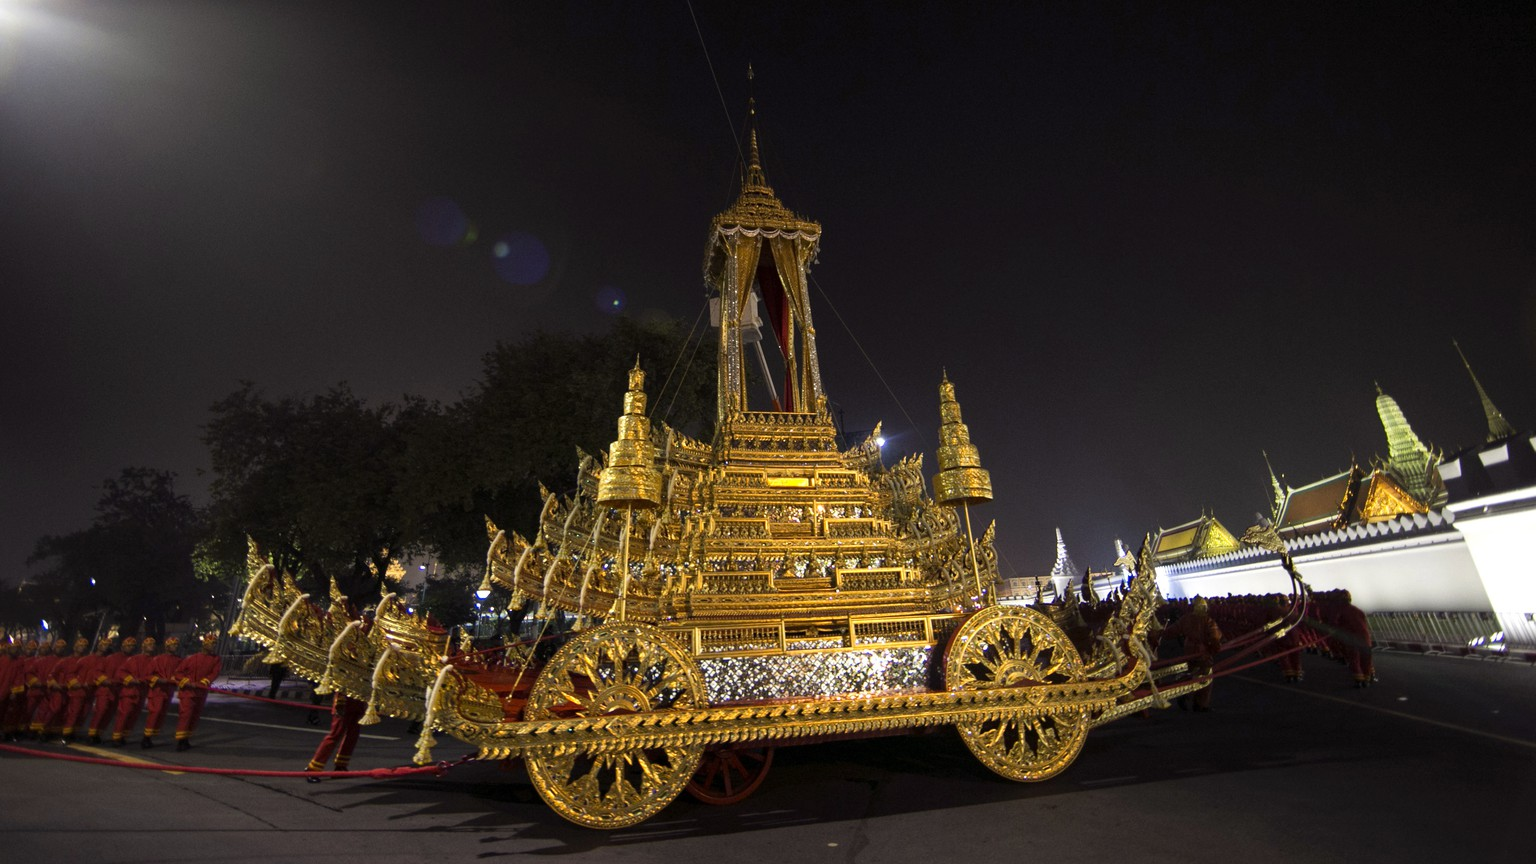 The royal officials pull to the royal chariot which will be used to carry the body and the royal urn of the late Thai King Bhumibol Adulyadej, before royal funeral past the Grand Palace during the Royal Funeral in Bangkok, Thailand, Thursday, Oct. 26, 2017. Thailand on Wednesday began an elaborate five-day funeral for King Bhumibol with his son, the new monarch, performing Buddhist merit-making rites in preparation for moving Bhumibol's remains to a spectacular golden crematorium.(AP Photo/Wason Wanichakorn)